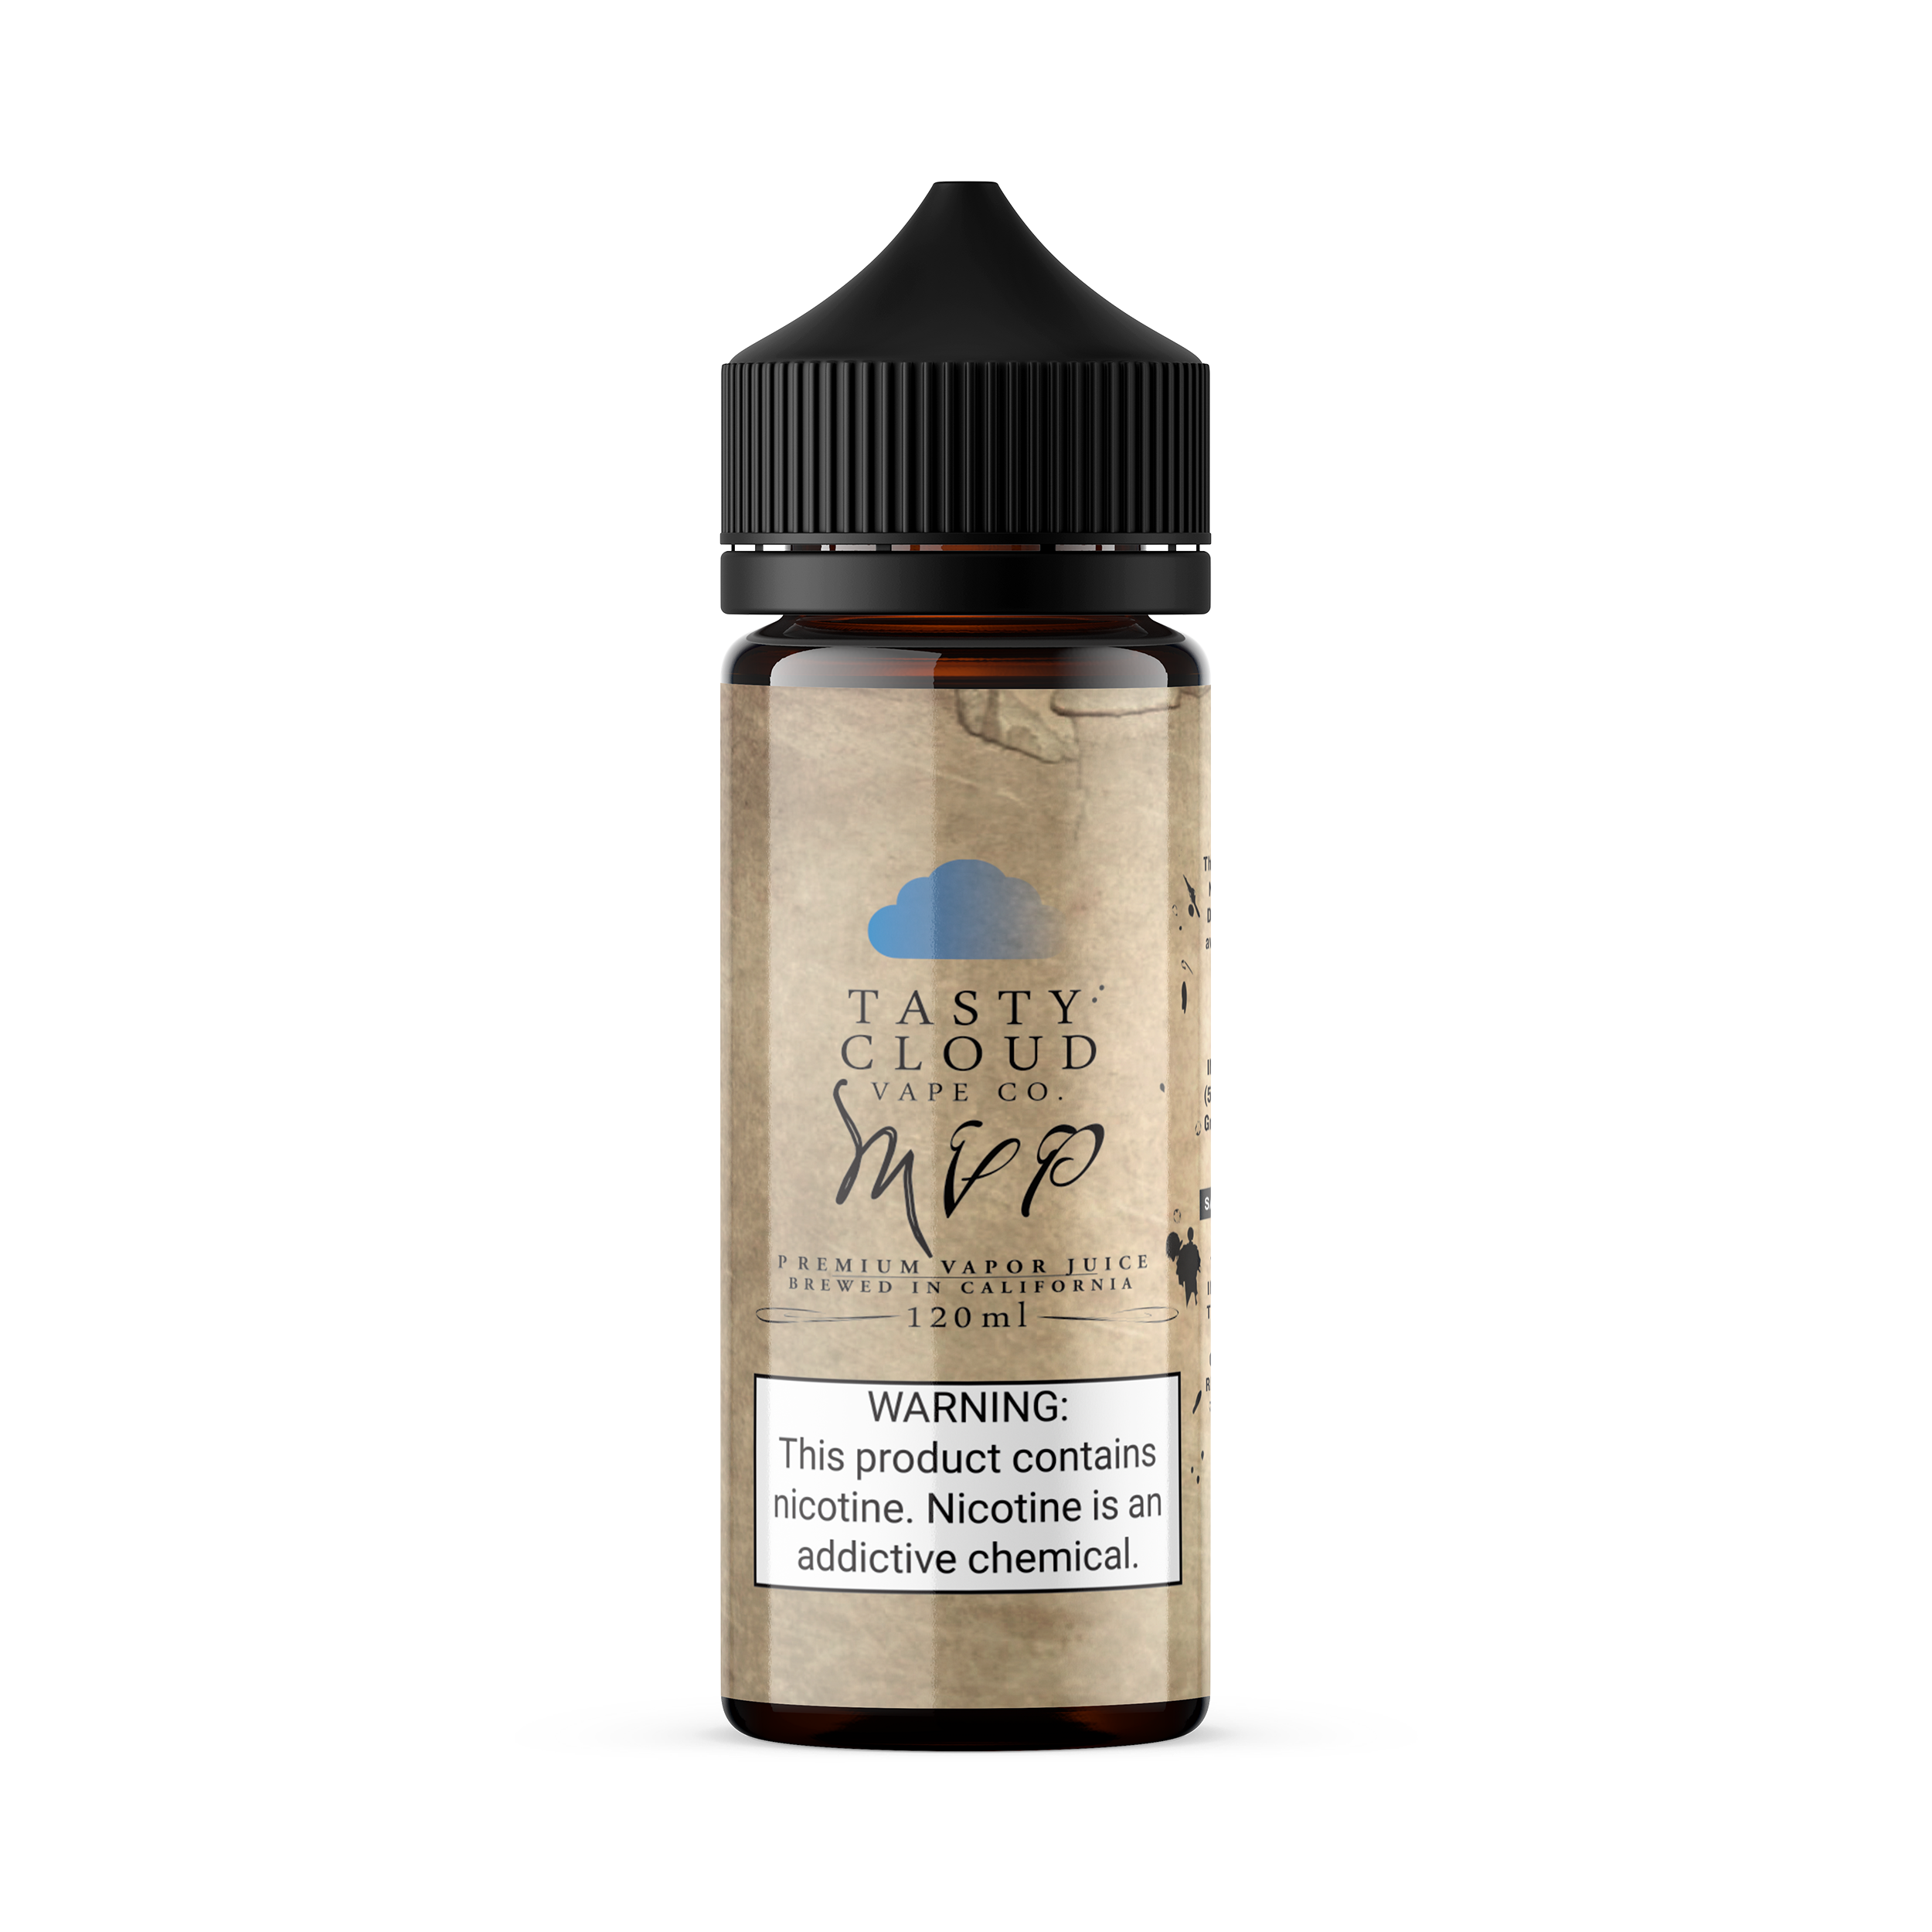 Tasty Cloud Vape Co - Tasty Cloud Classic - MVP